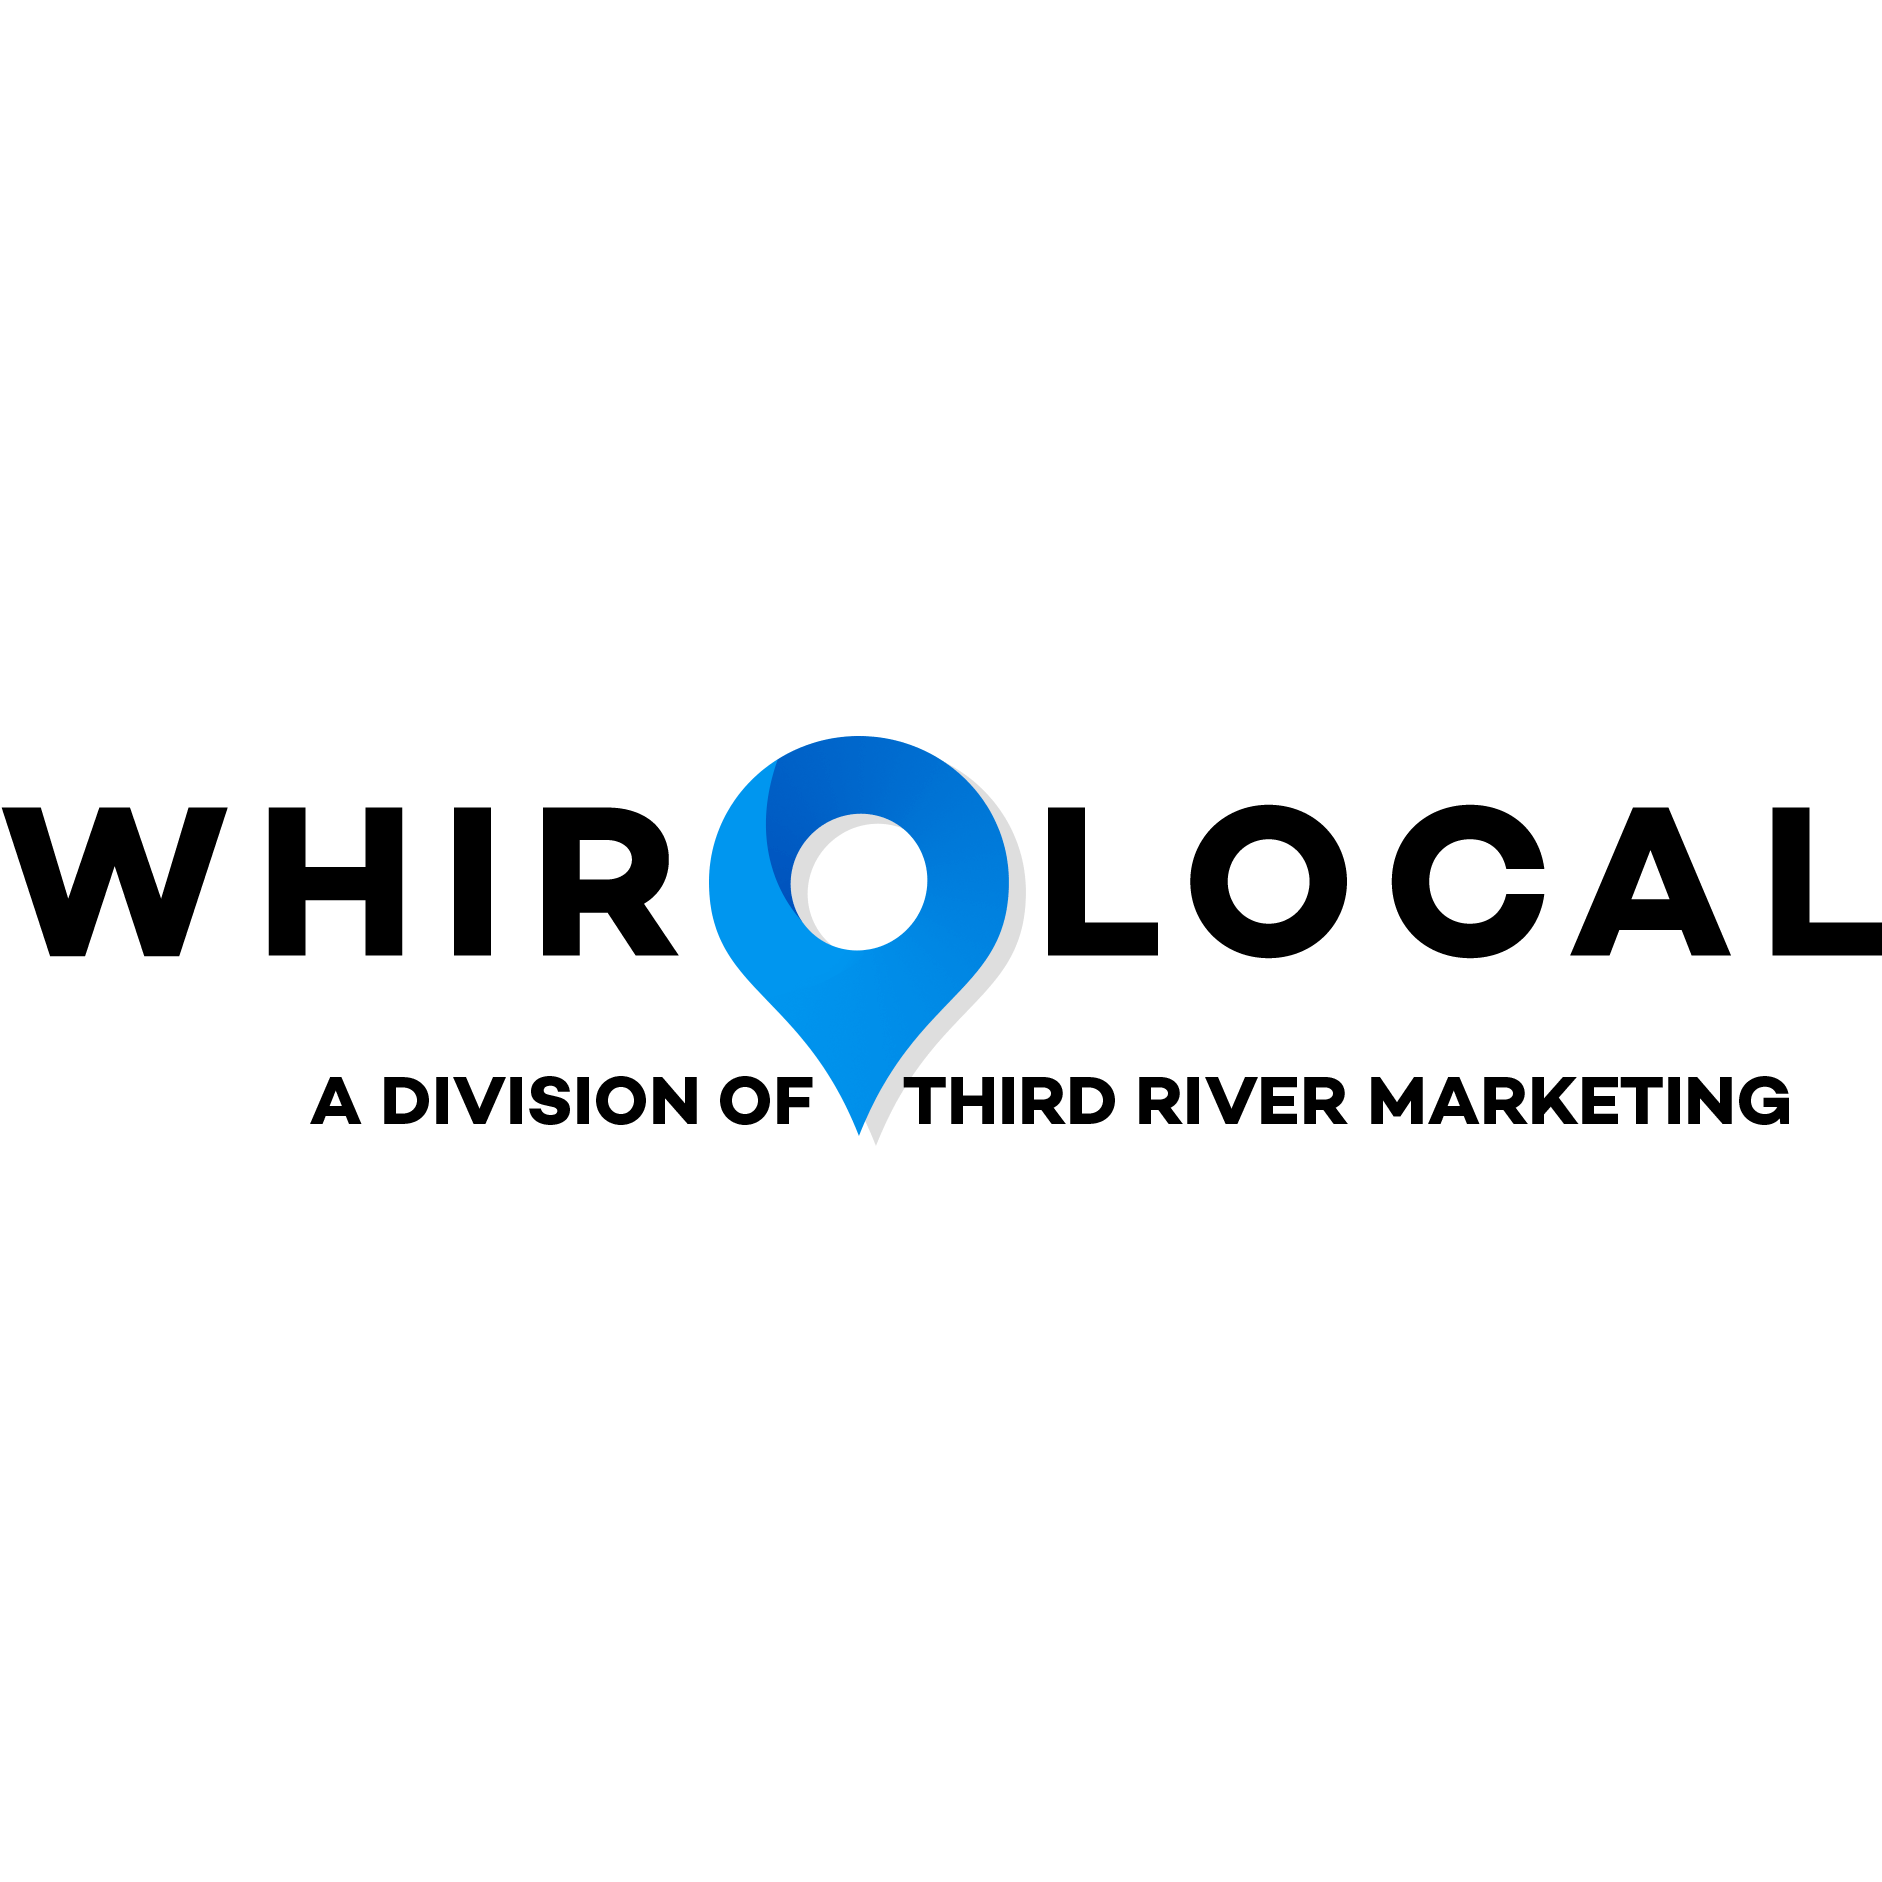 WhirLocal, A Division Of Third River Marketing